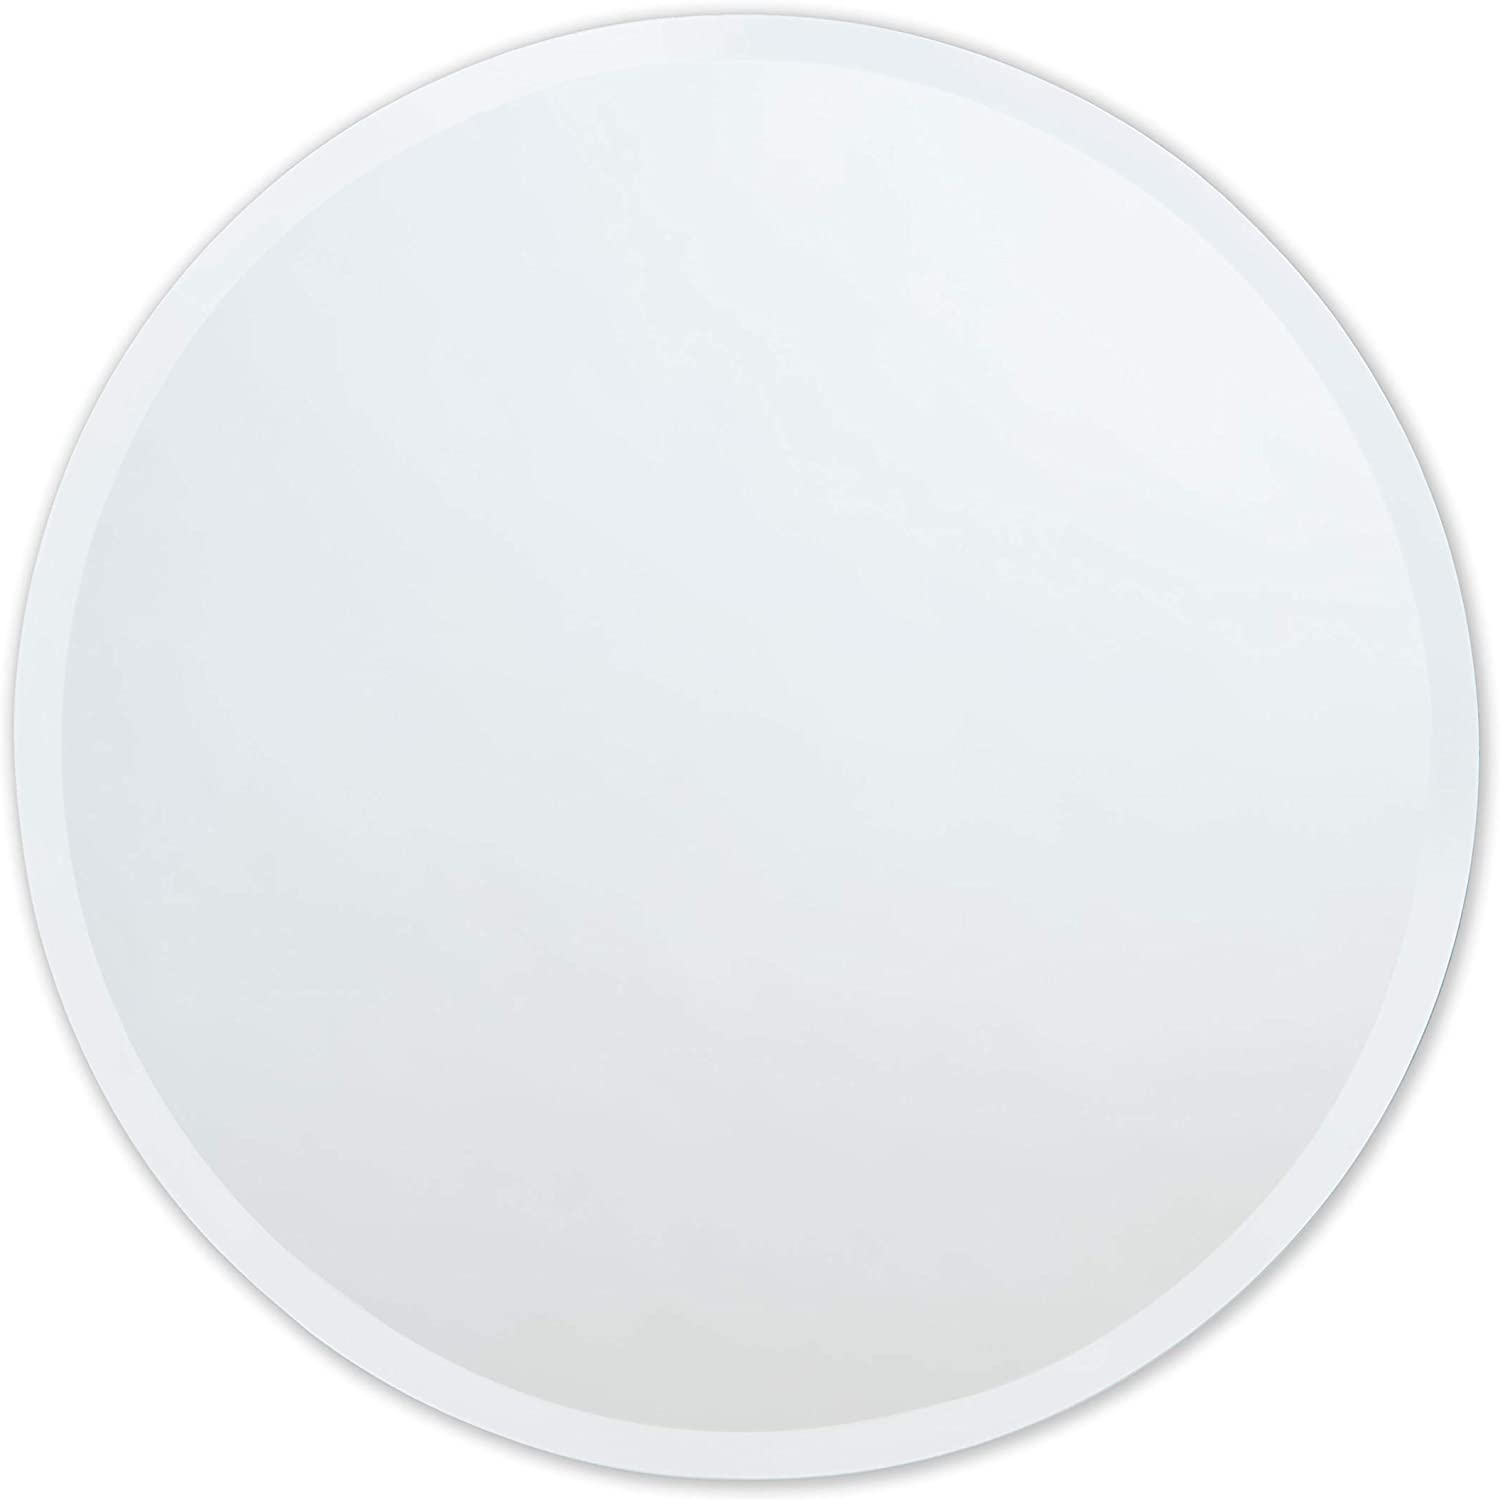 The Better Bevel Round Frameless Wall Mirror Bathroom, Vanity, Bedroom Mirror 36-inch Diameter Circle Beveled Edge